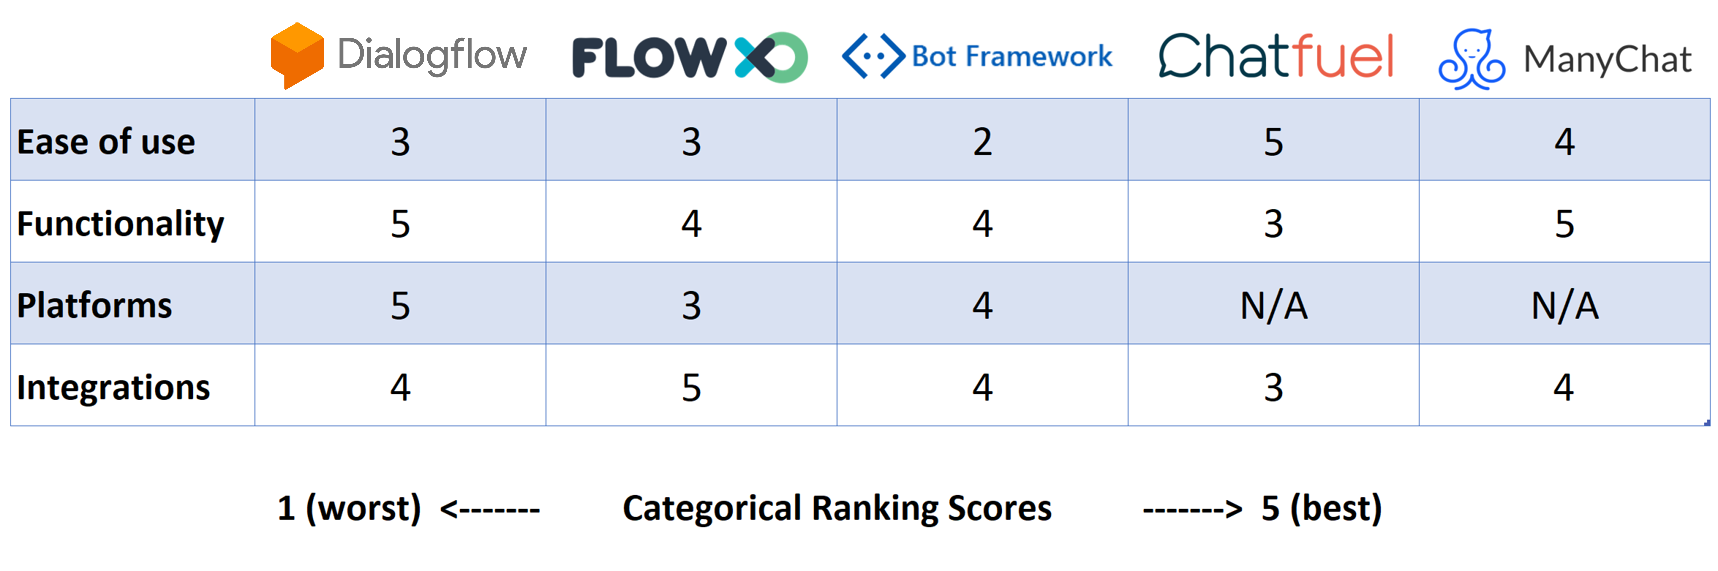 Graded comparison chart of martech artificial intelligence tools for creating chatbots